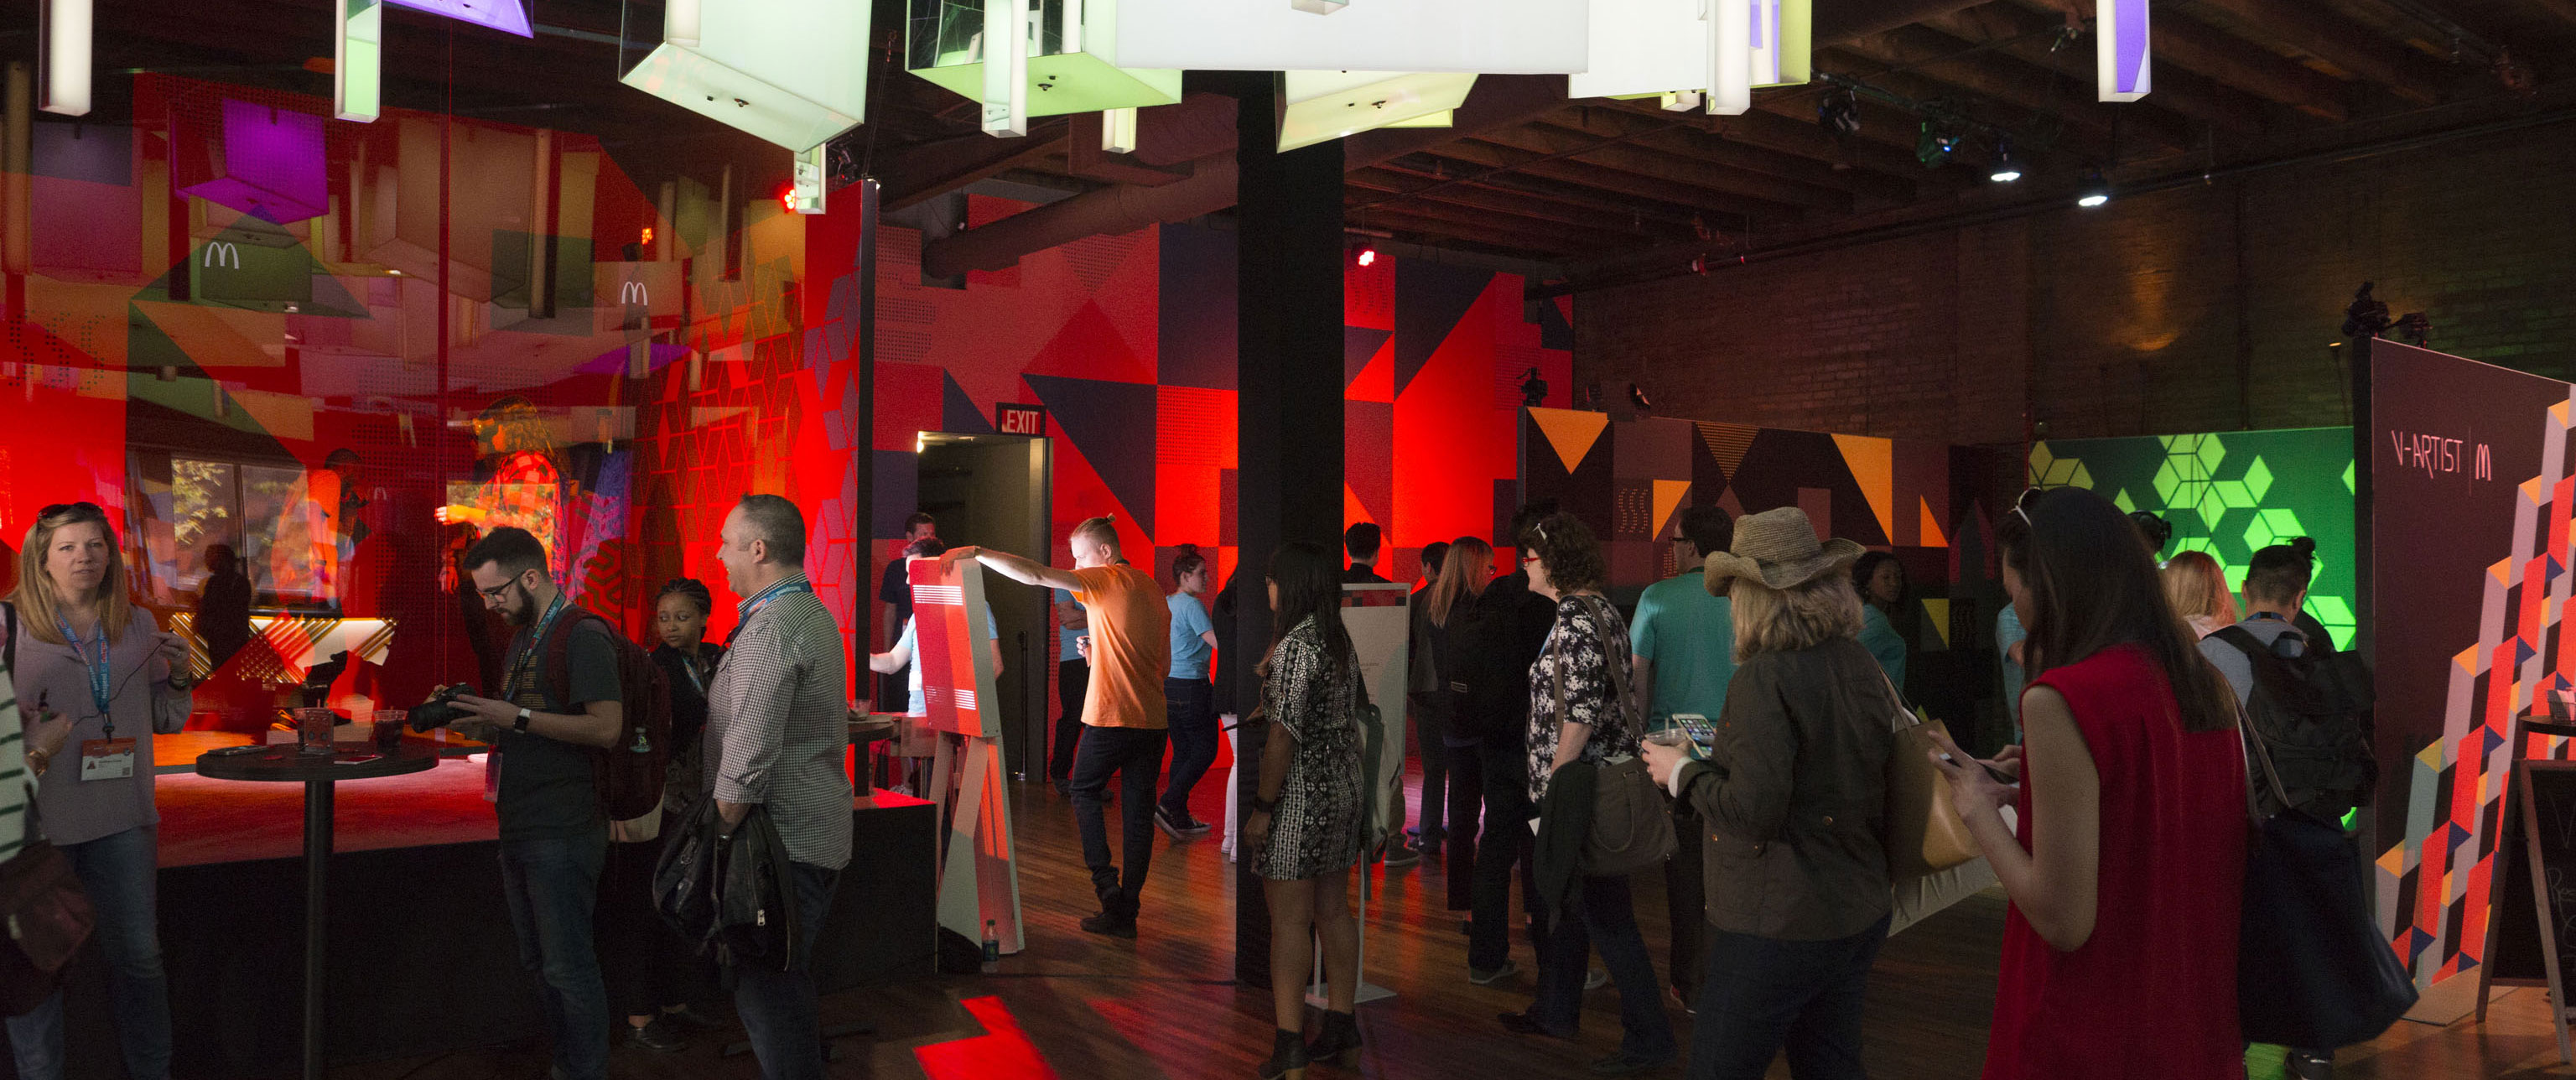 Groove jones worked directly with the McDonald's brand team on the installation and technologies for the V-Artist experience in the McDonald's Loft.